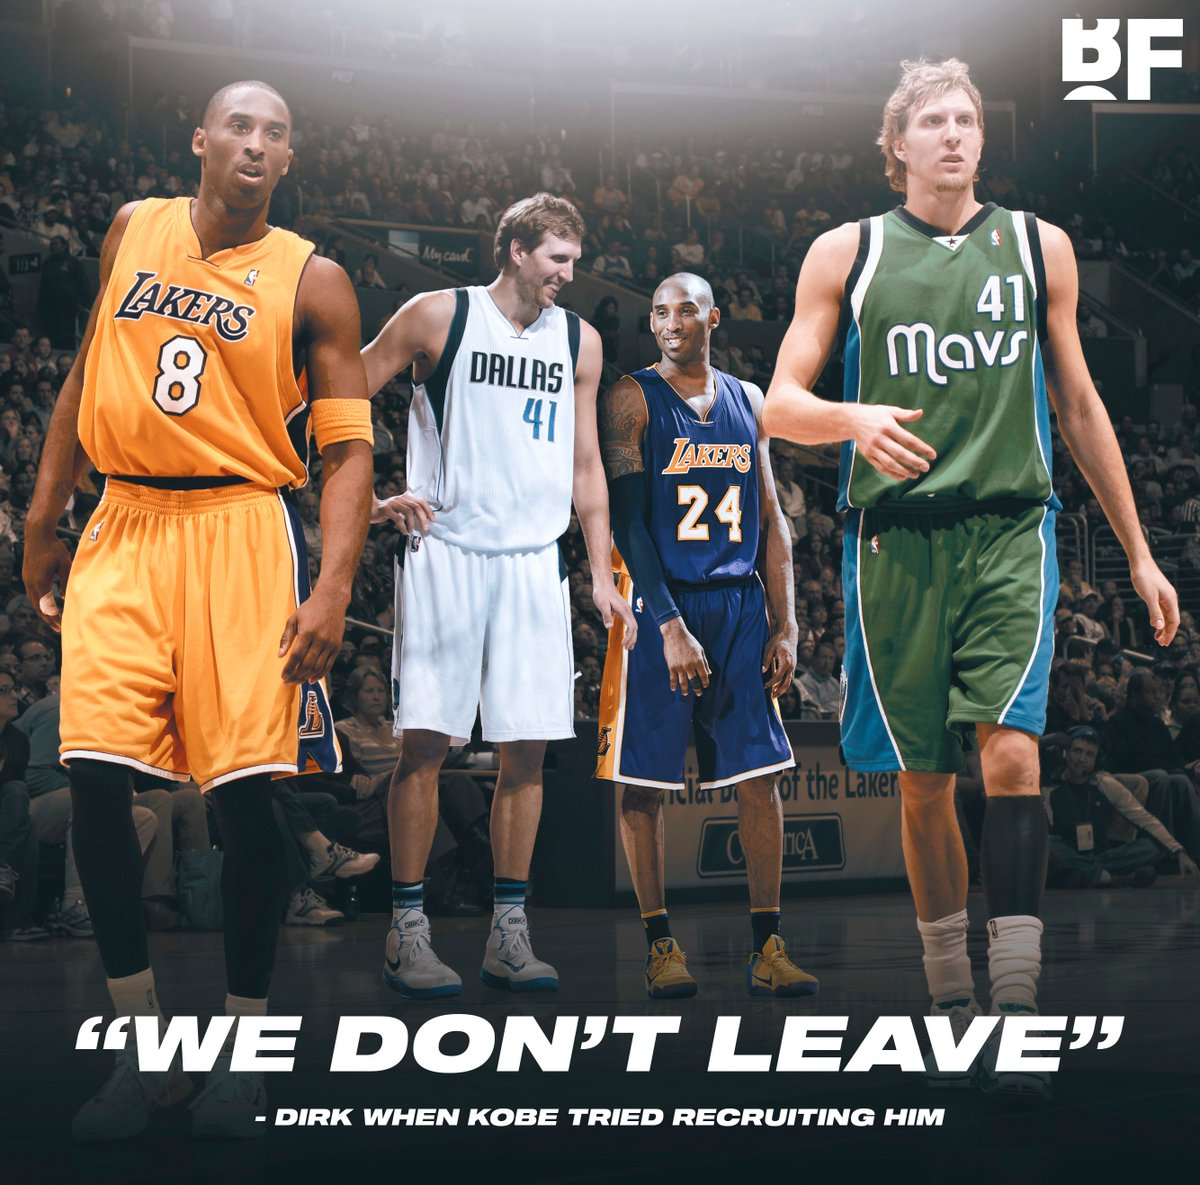 """""""I said 'Dirk, listen, I know you're not leaving Dallas, I get it, but I gotta make the call, what do you think?' He says 'Yeah man you're right, bro, I'm a lifer like you man, we don't leave.""""  - Kobe Bryant on when he tried recruiting Dirk Nowitzki during free agency"""